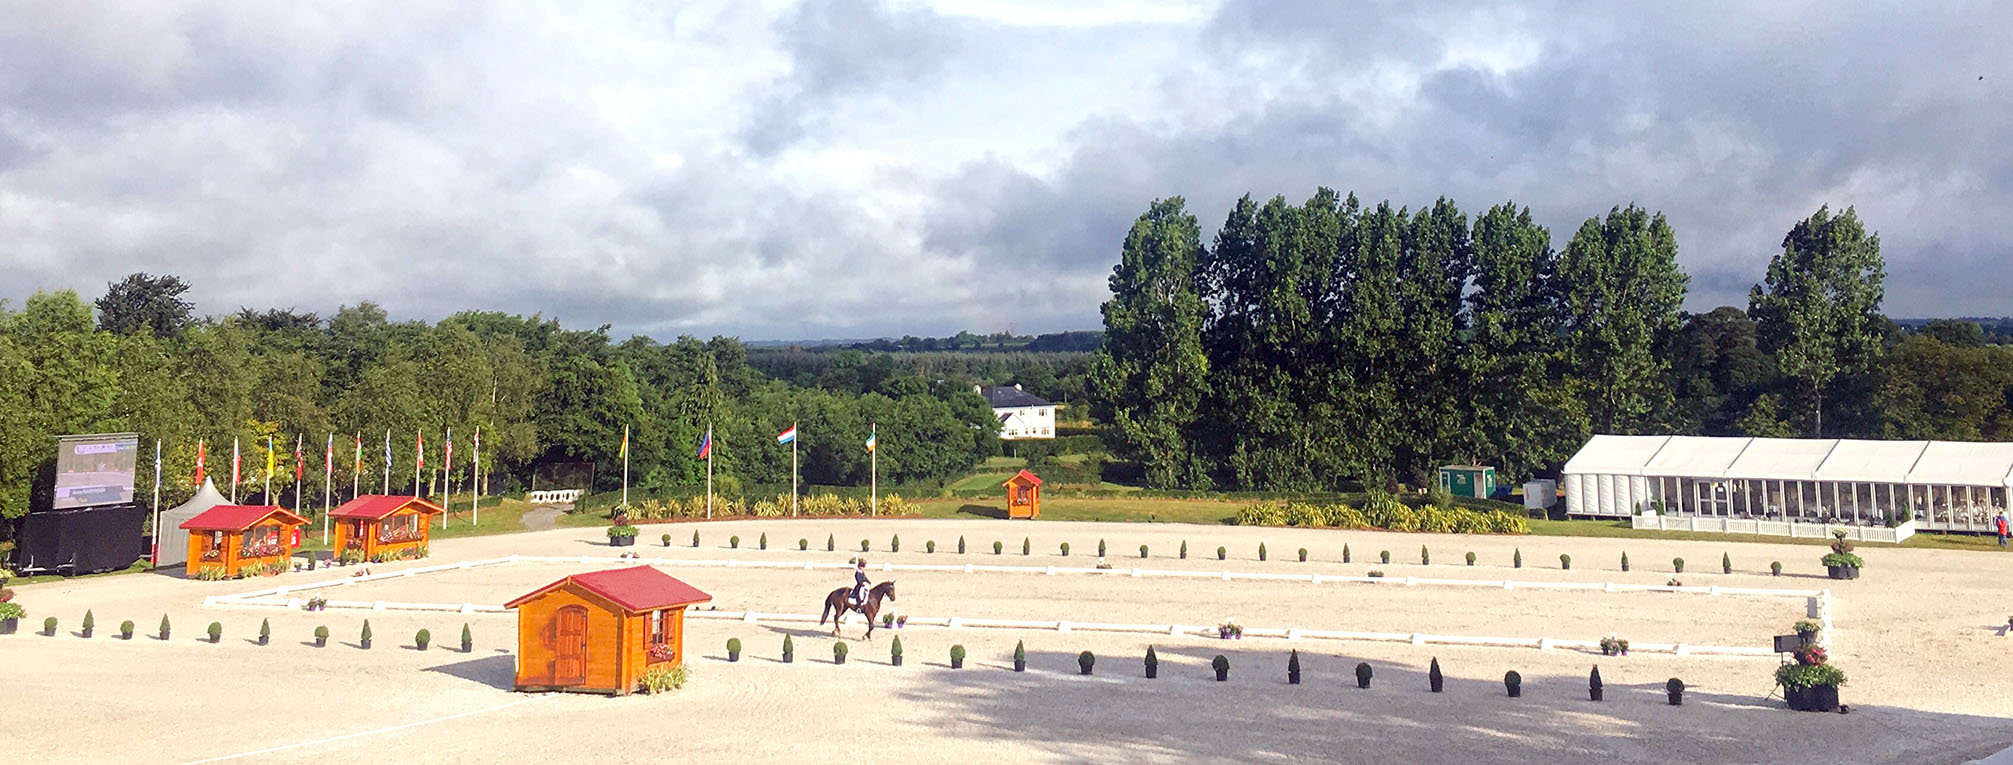 Millstreet 2018 – FEI Eventing Nations Cup™ Series